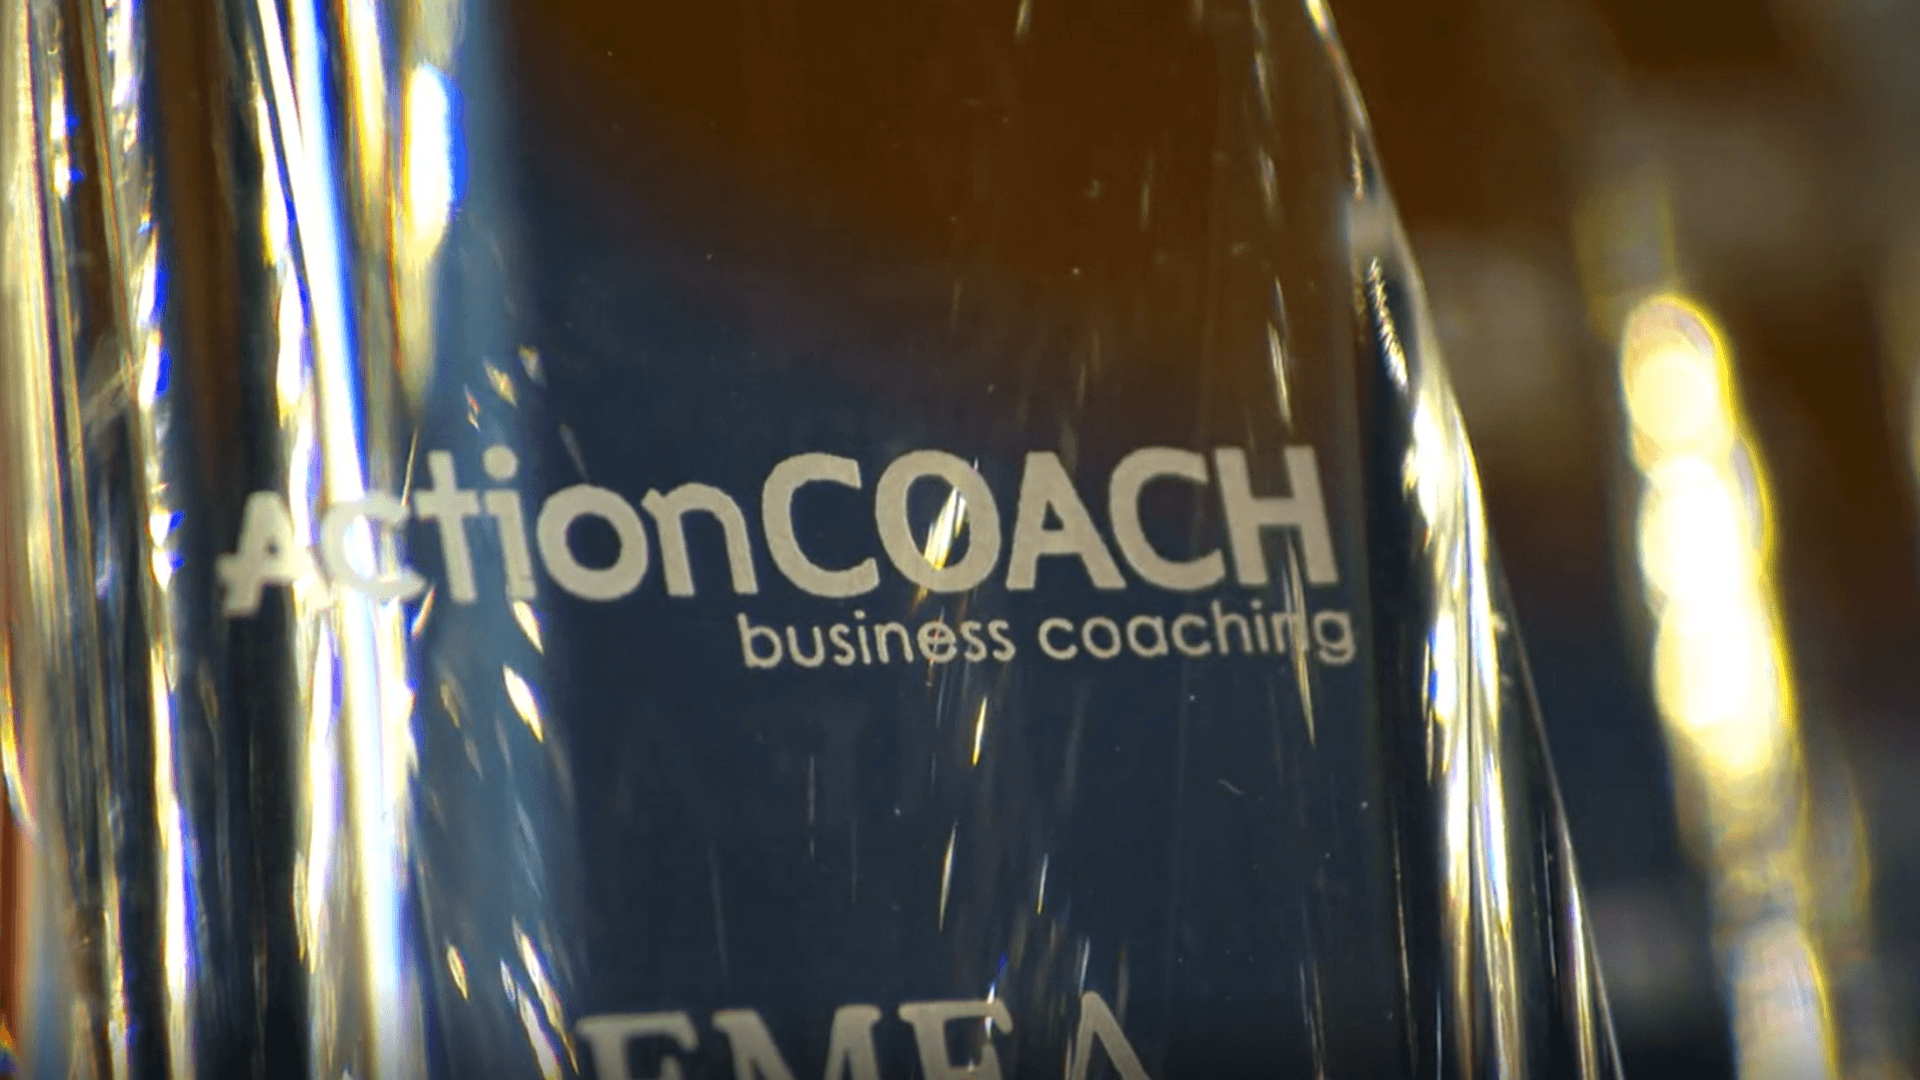 ActionCOACH – helping businesses maximise potential and profits